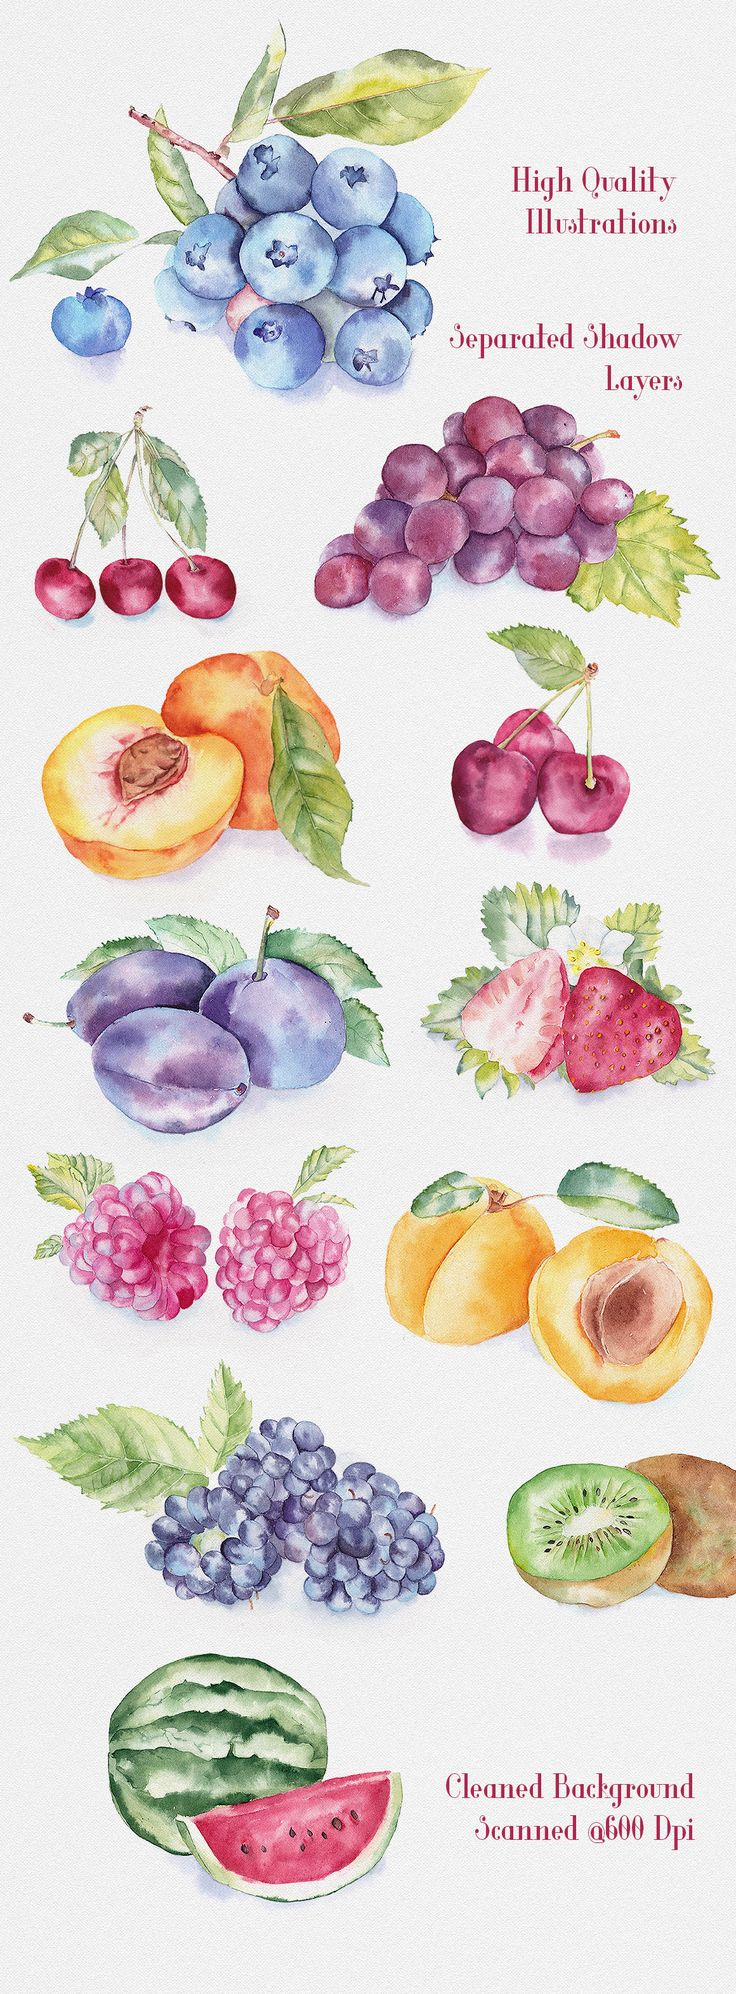 Fruit Watercolor Illustrations by Emine Gayiran on Creative Market